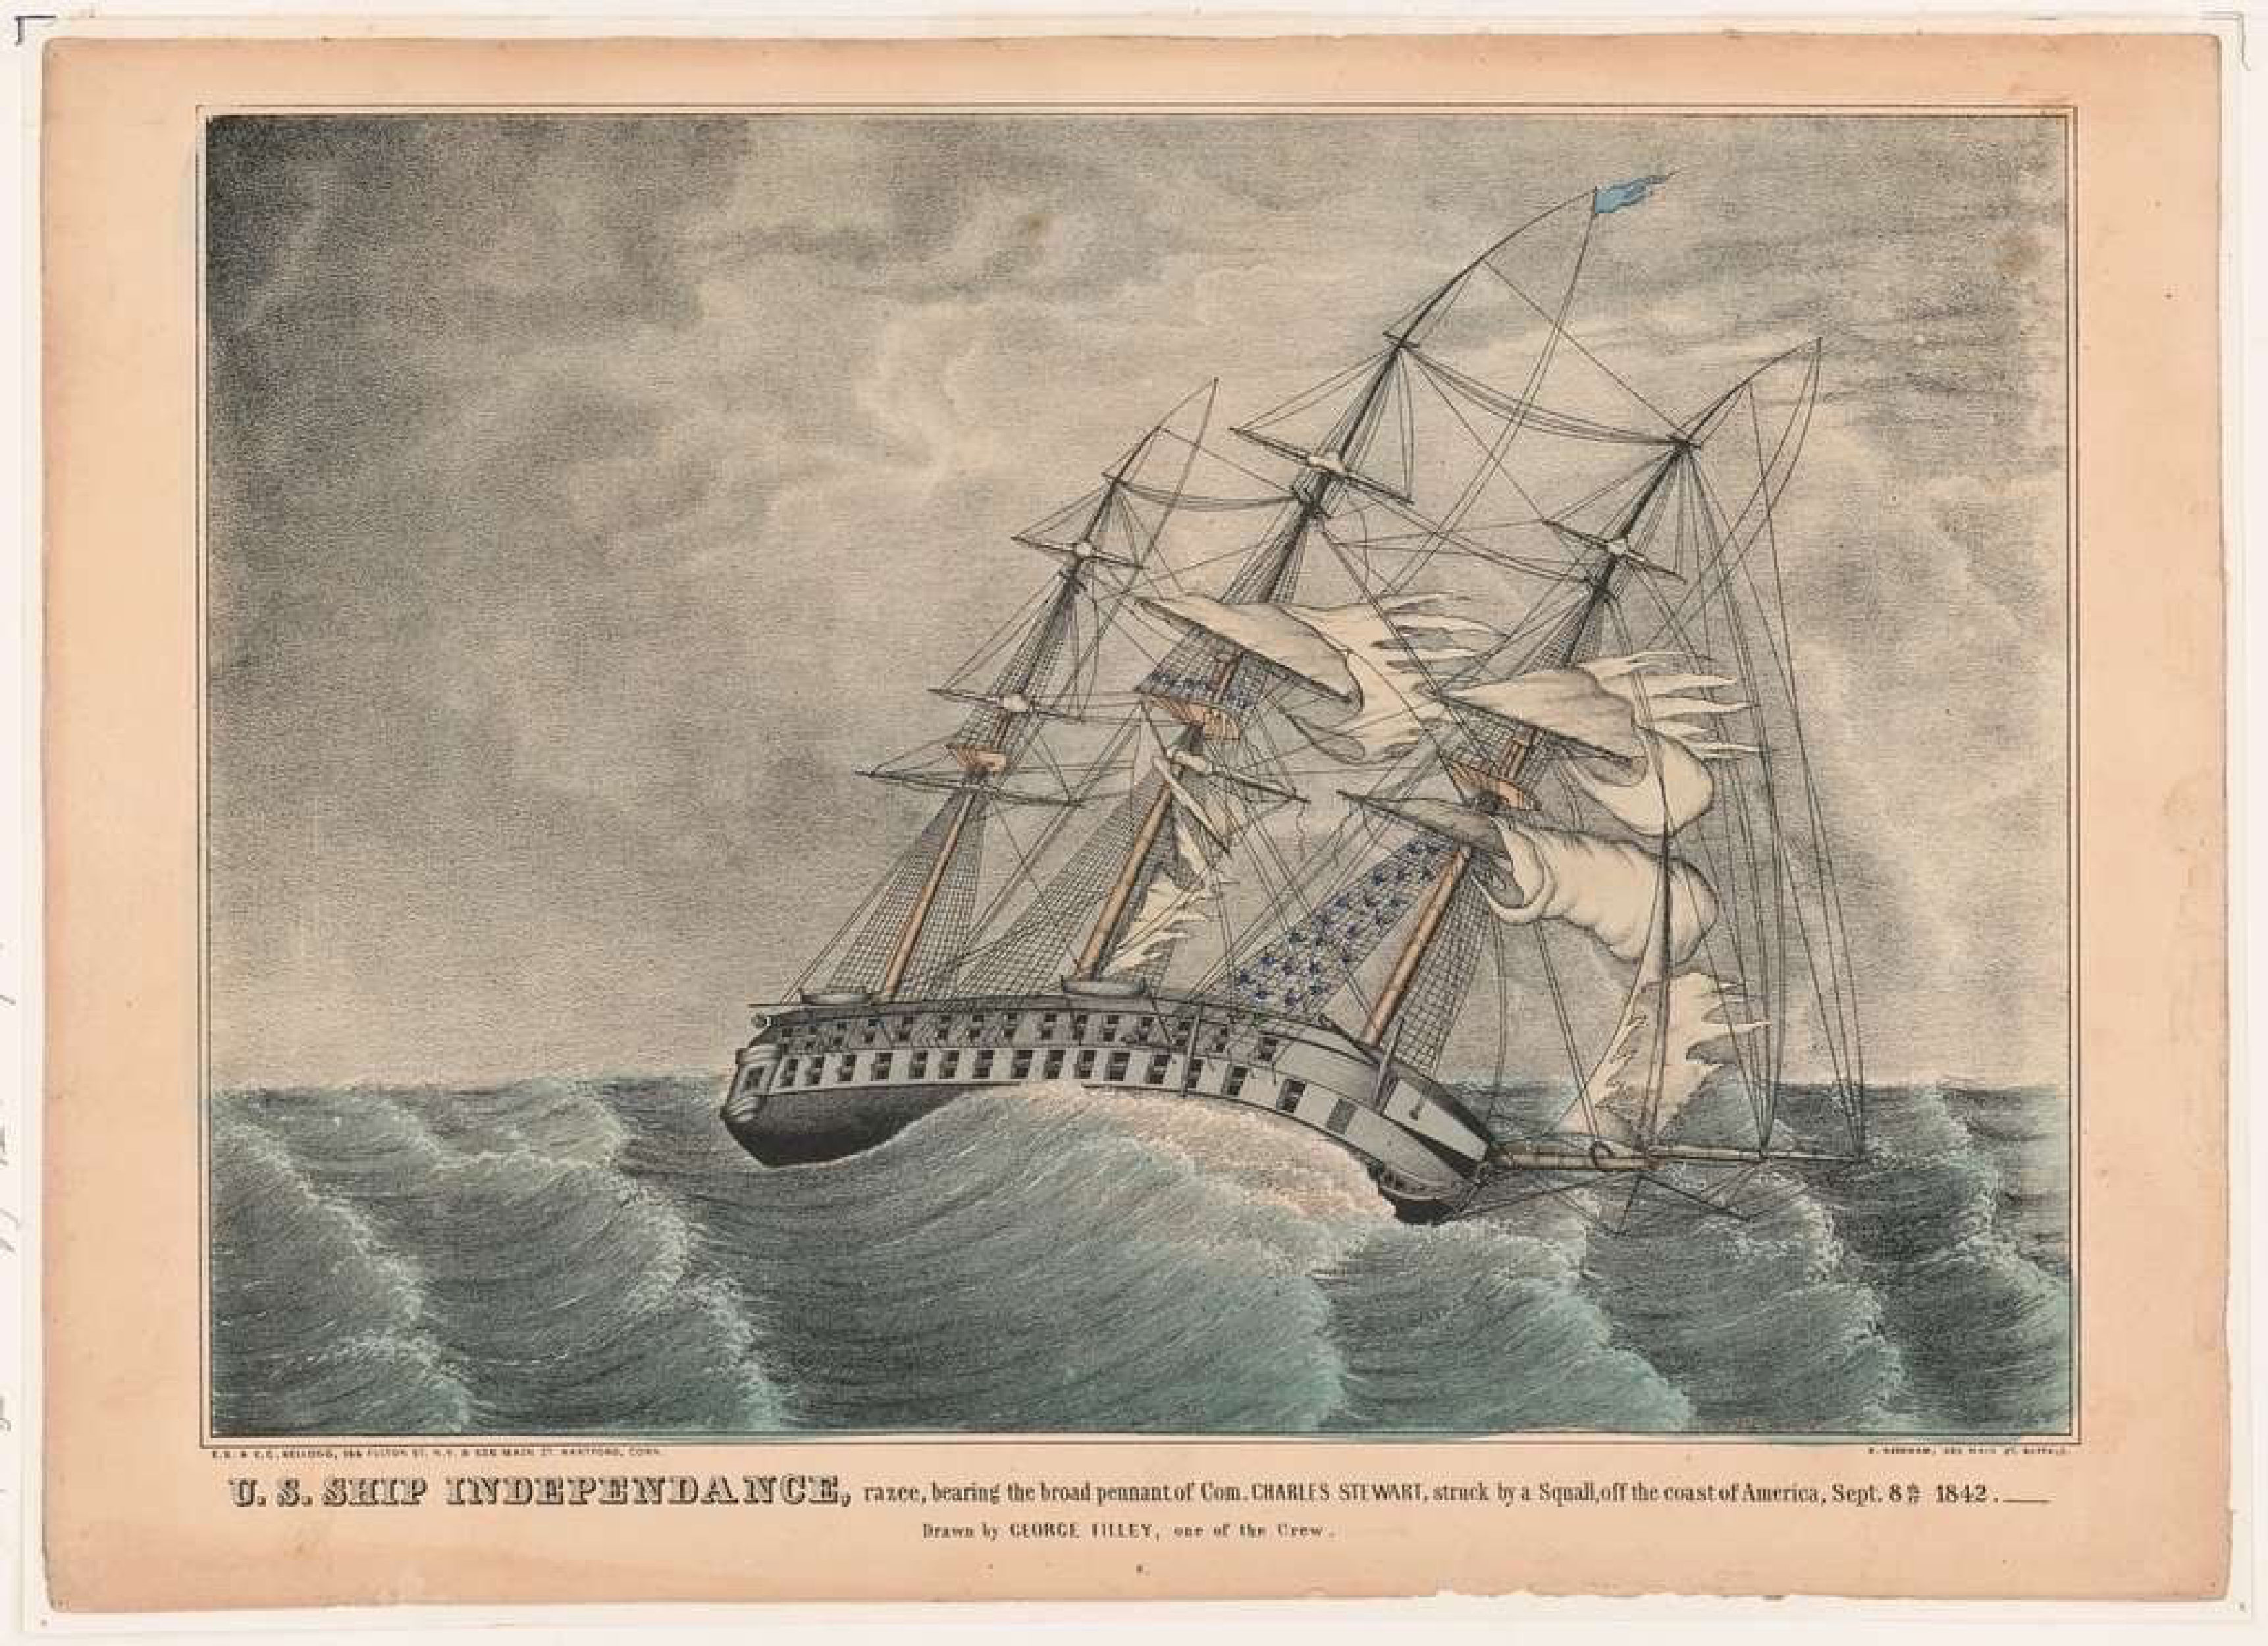 U.S. Ship Independence - lithograph